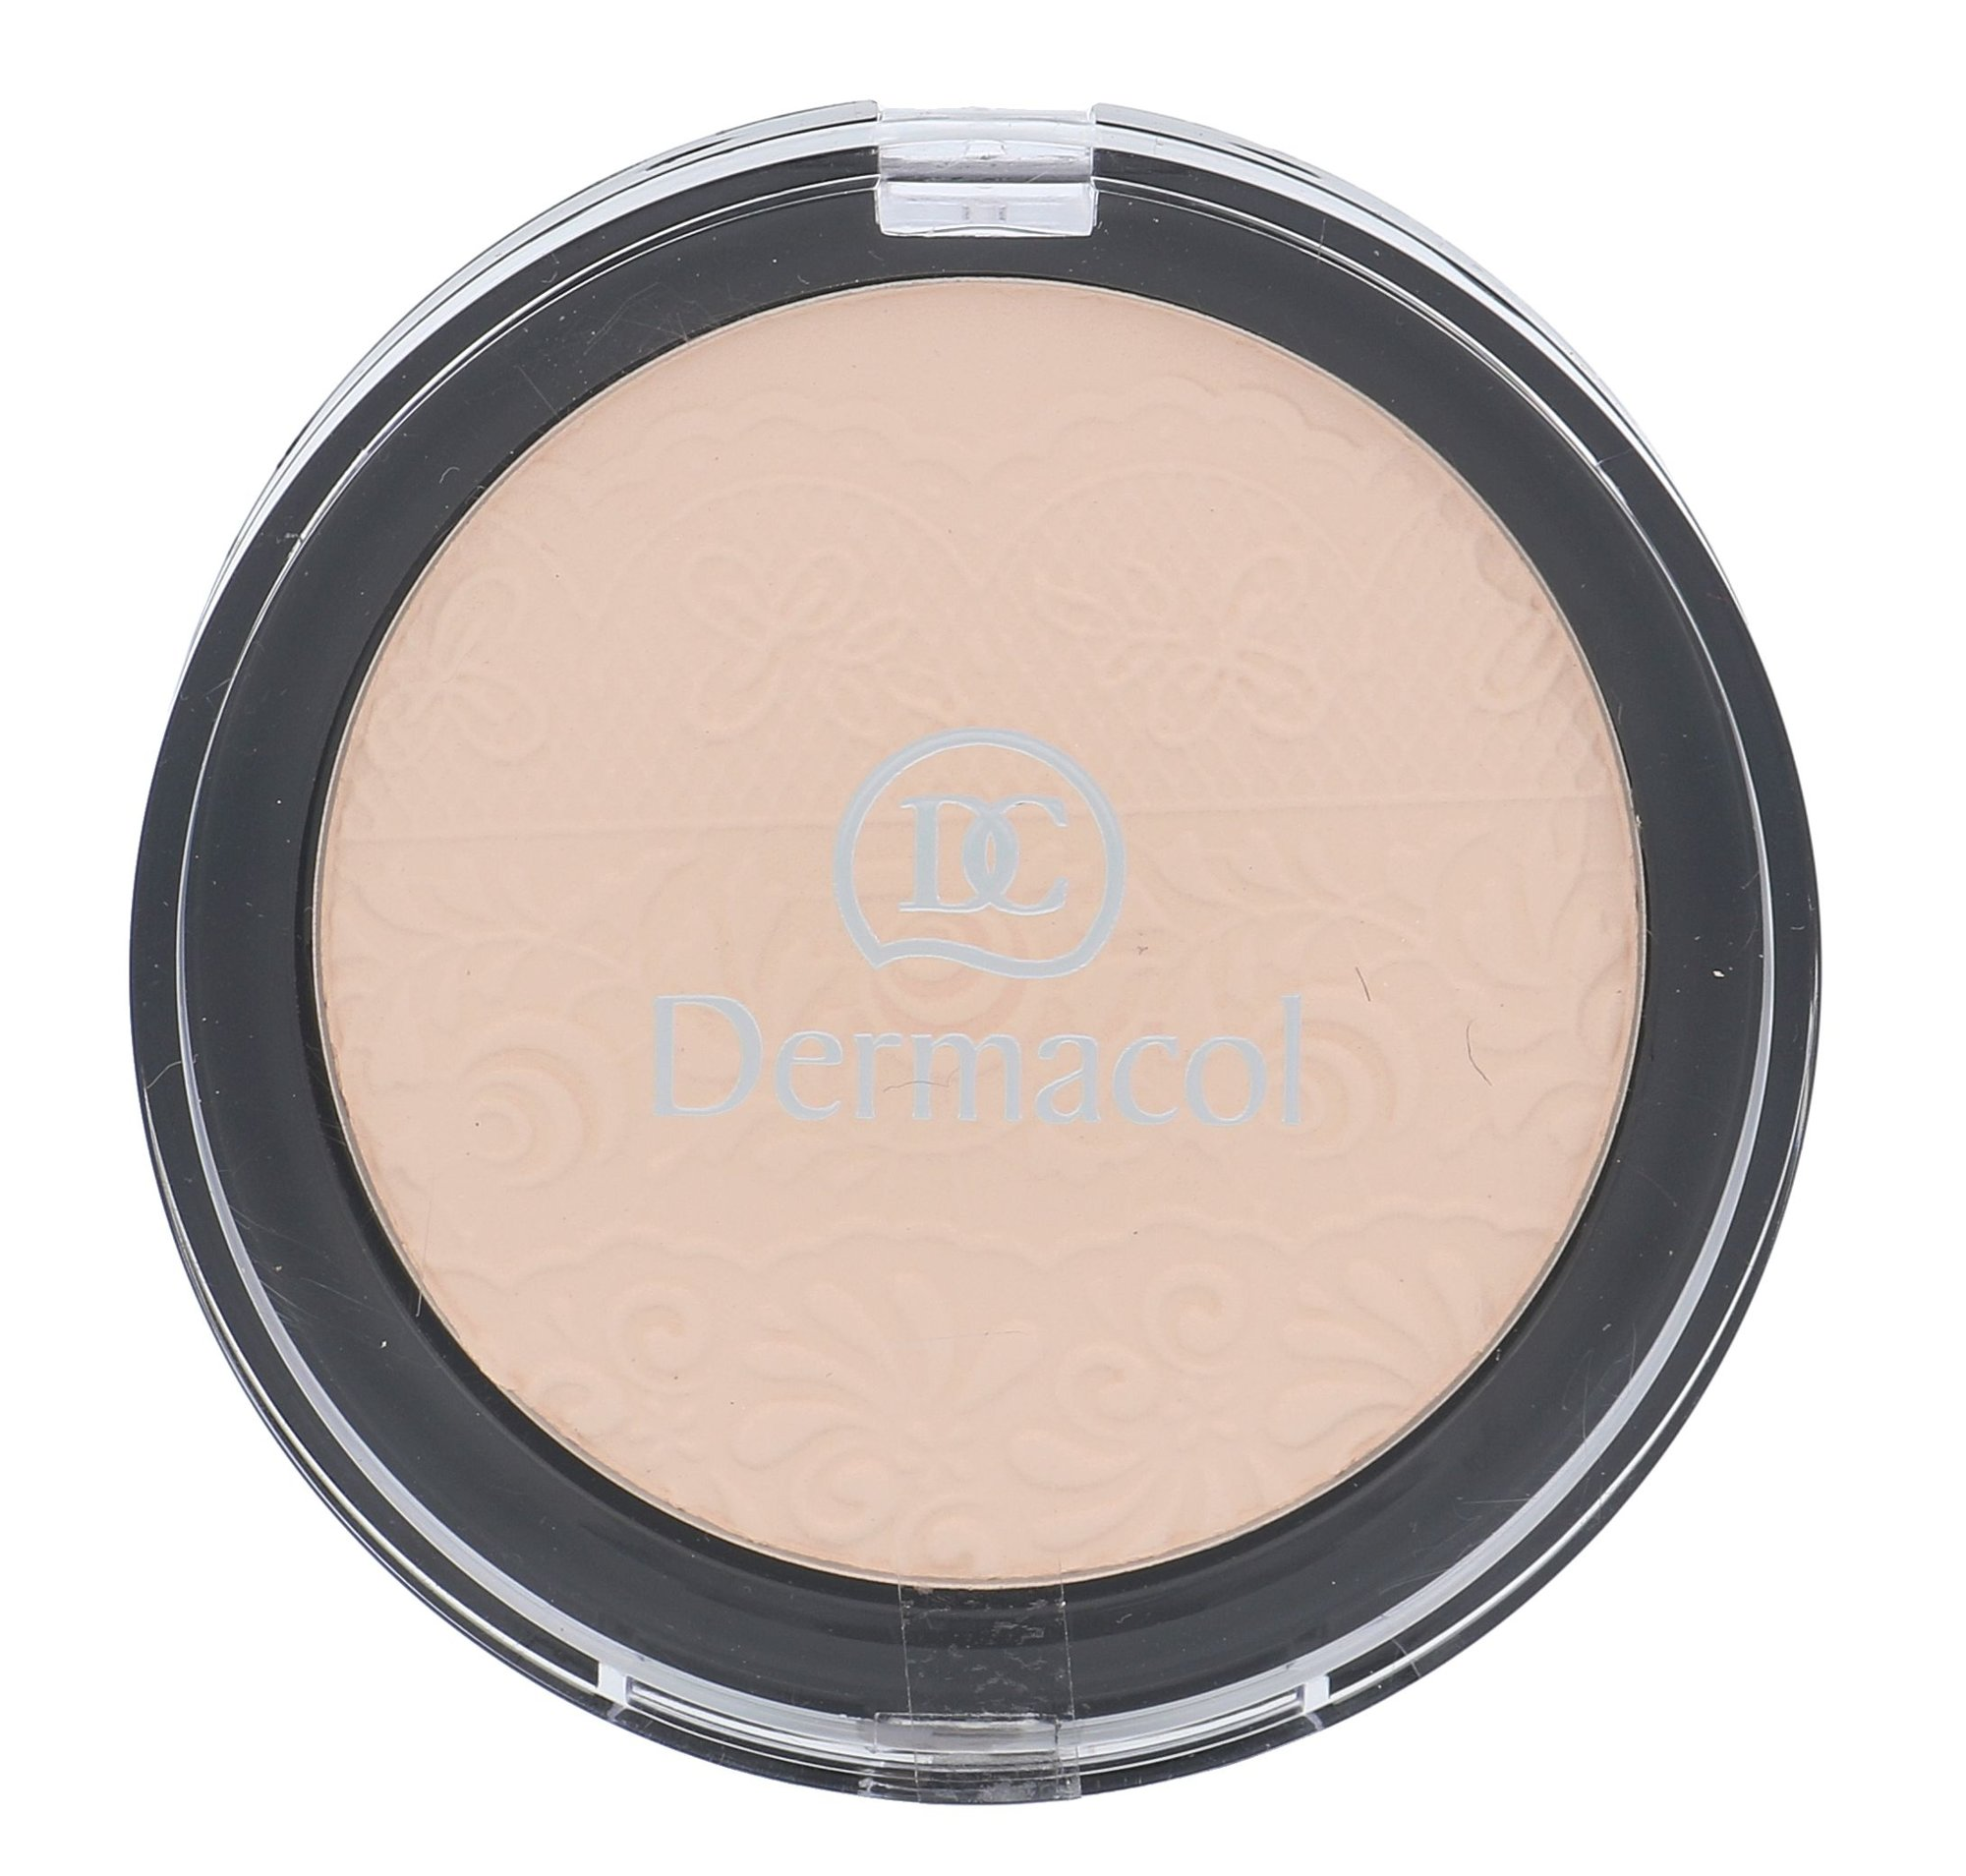 Dermacol Compact Powder Cosmetic 8ml 03